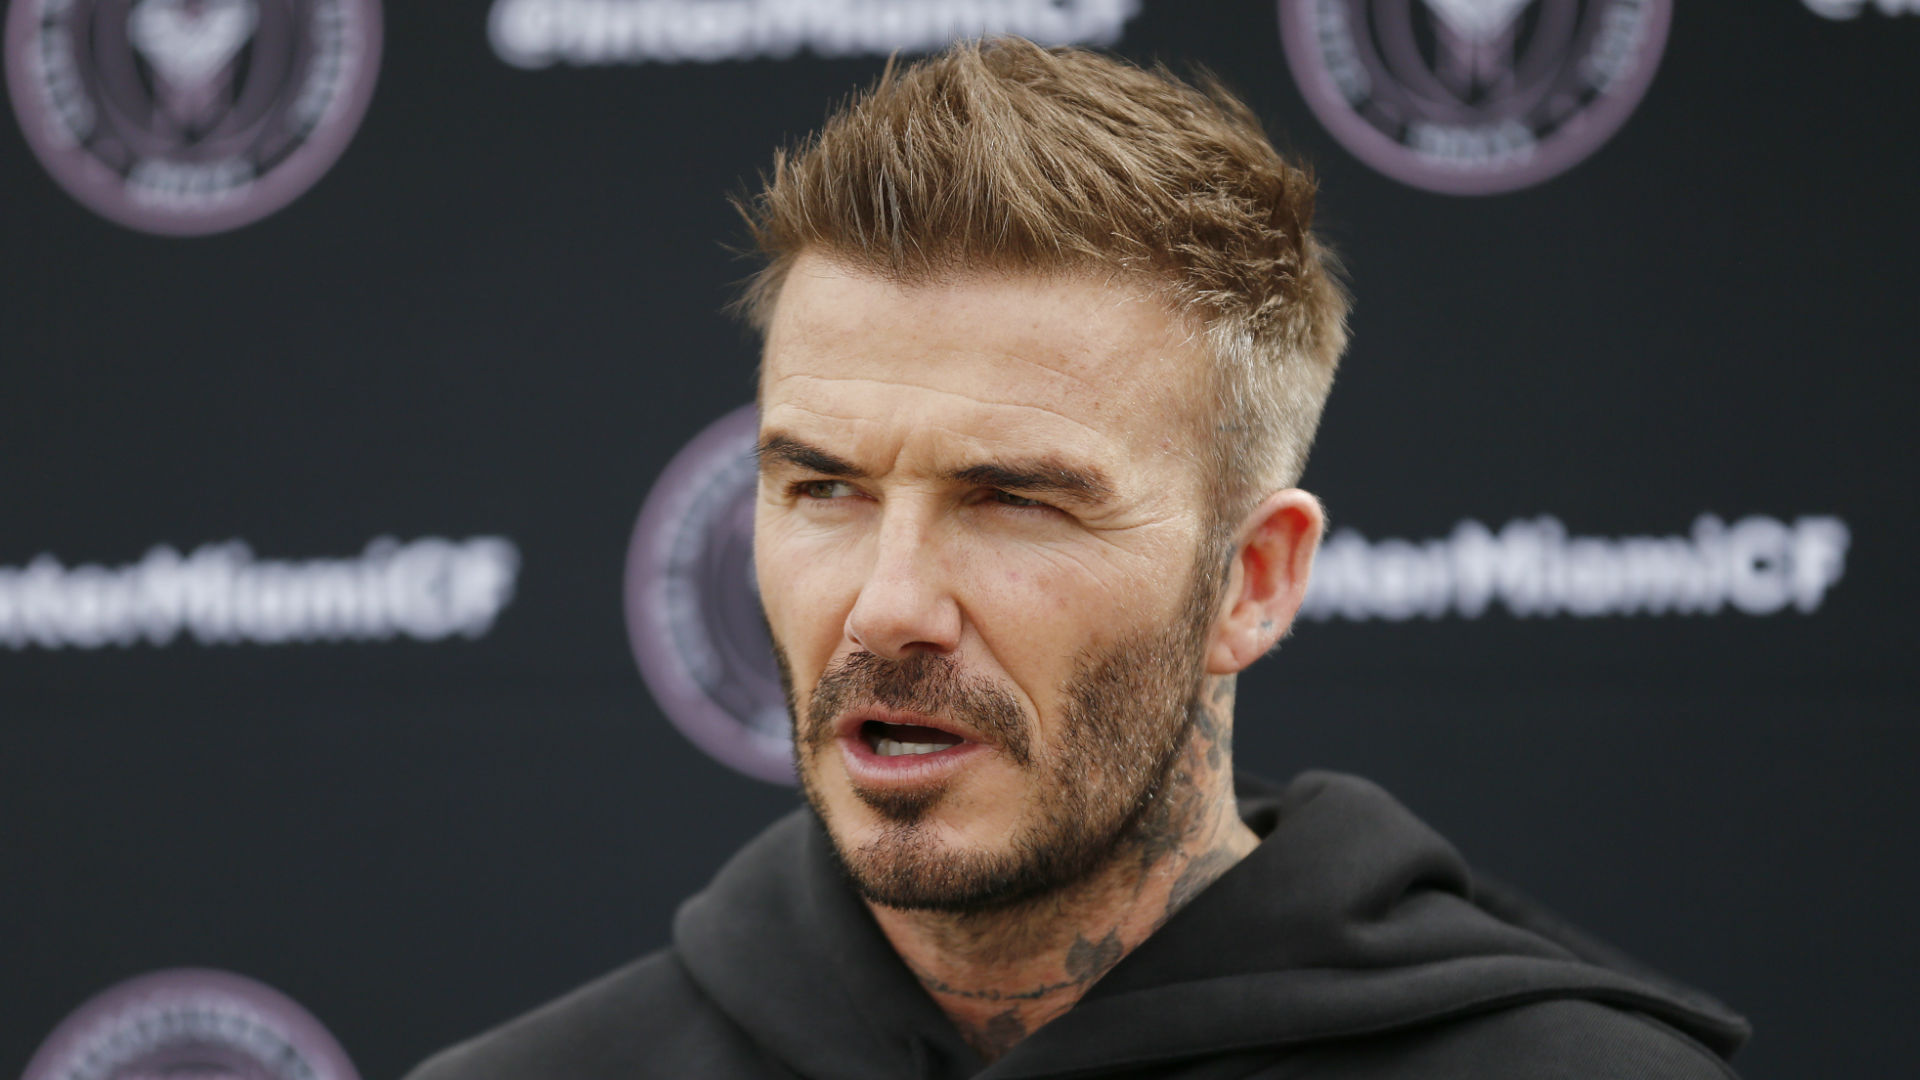 'I still miss it' - David Beckham reflects on playing career seven years on from retirement